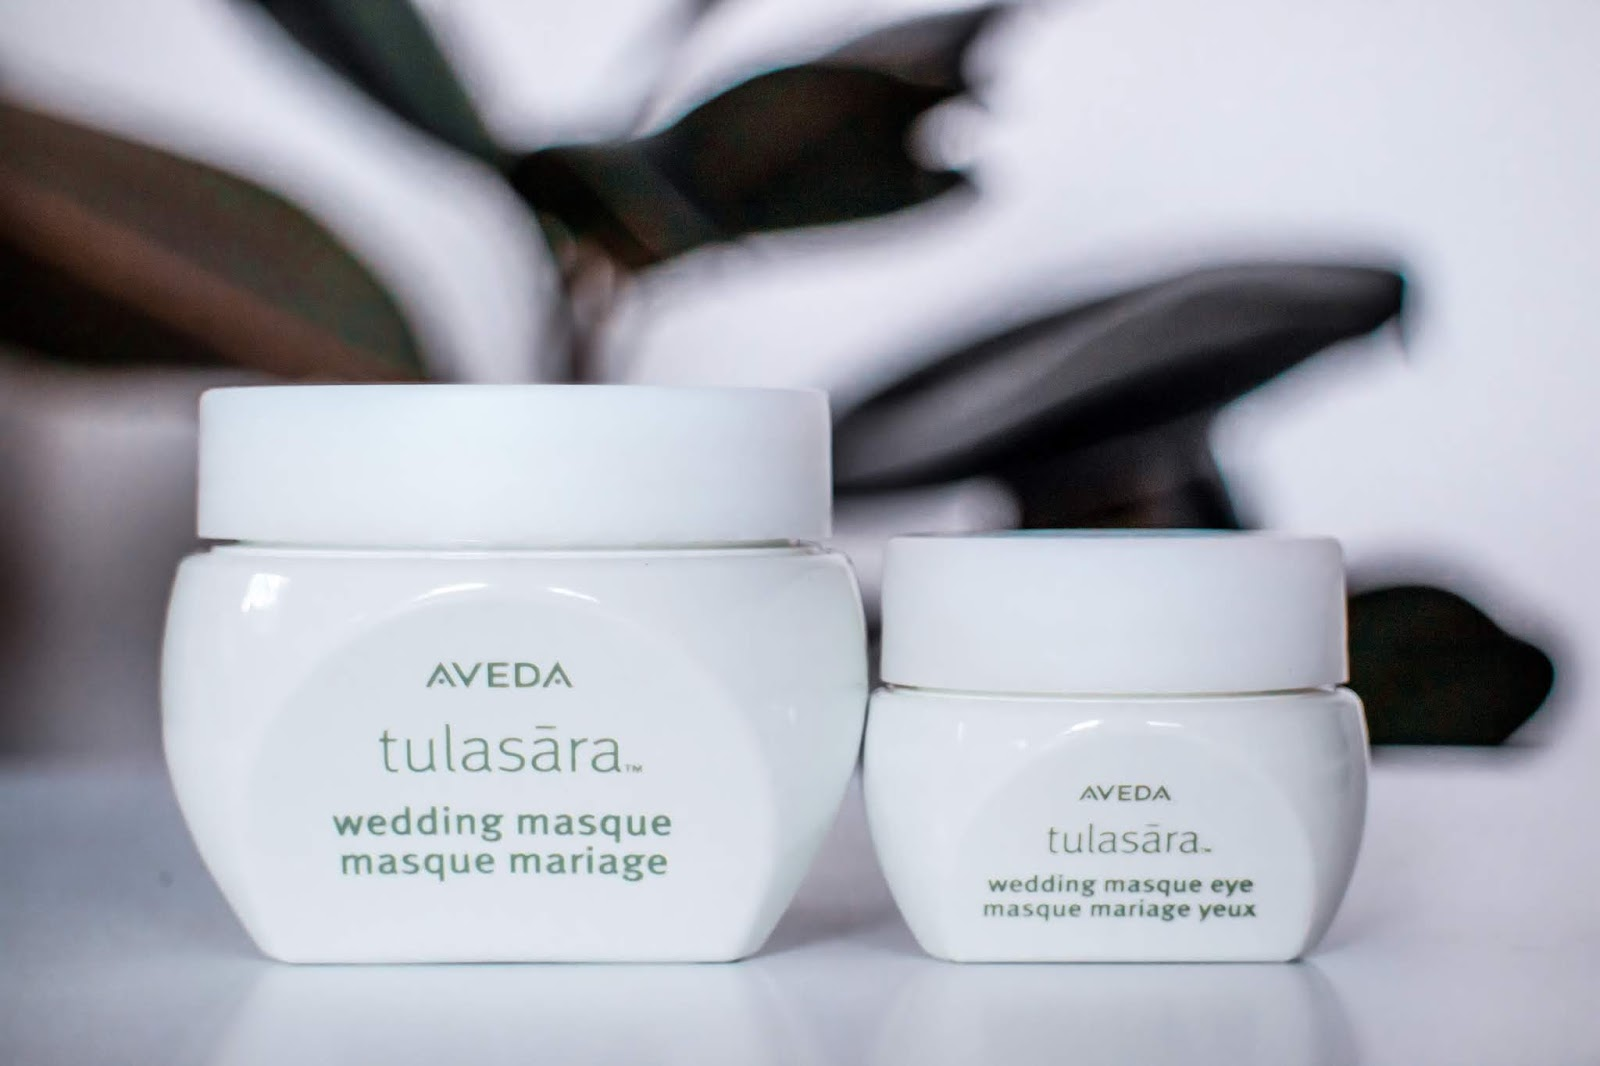 Aveda Tulasara Wedding Masque and Tulasara Wedding Eye Masque